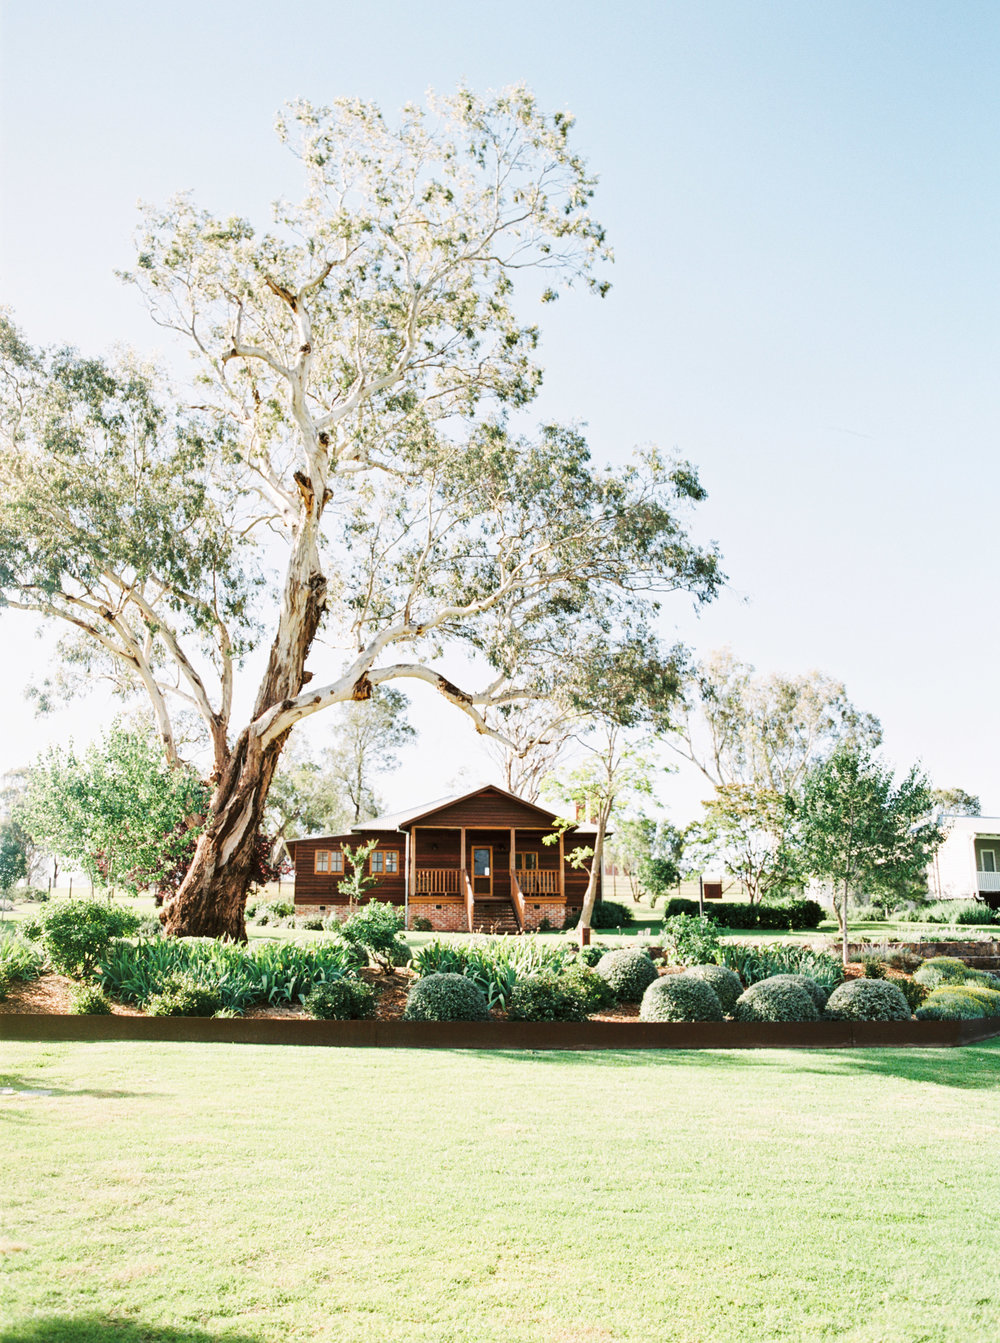 00029- Goonoo Goonoo Station Wedding Tamworth NSW Fine Art Film Wedding Photographer Sheri McMahon_-2.jpg